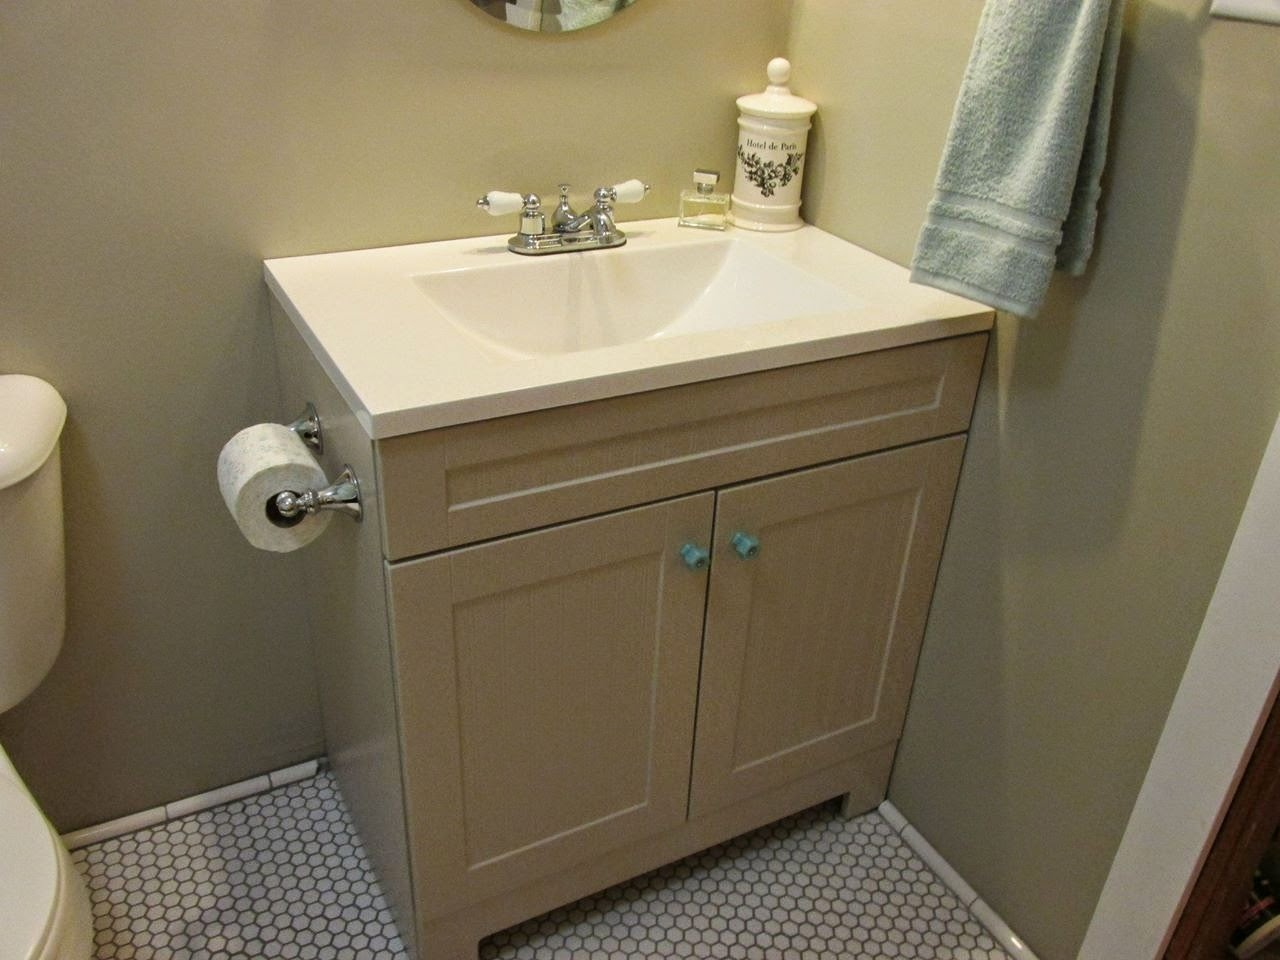 Home depot bathroom paint ideas - Home Depot Bathroom Vanity Sale